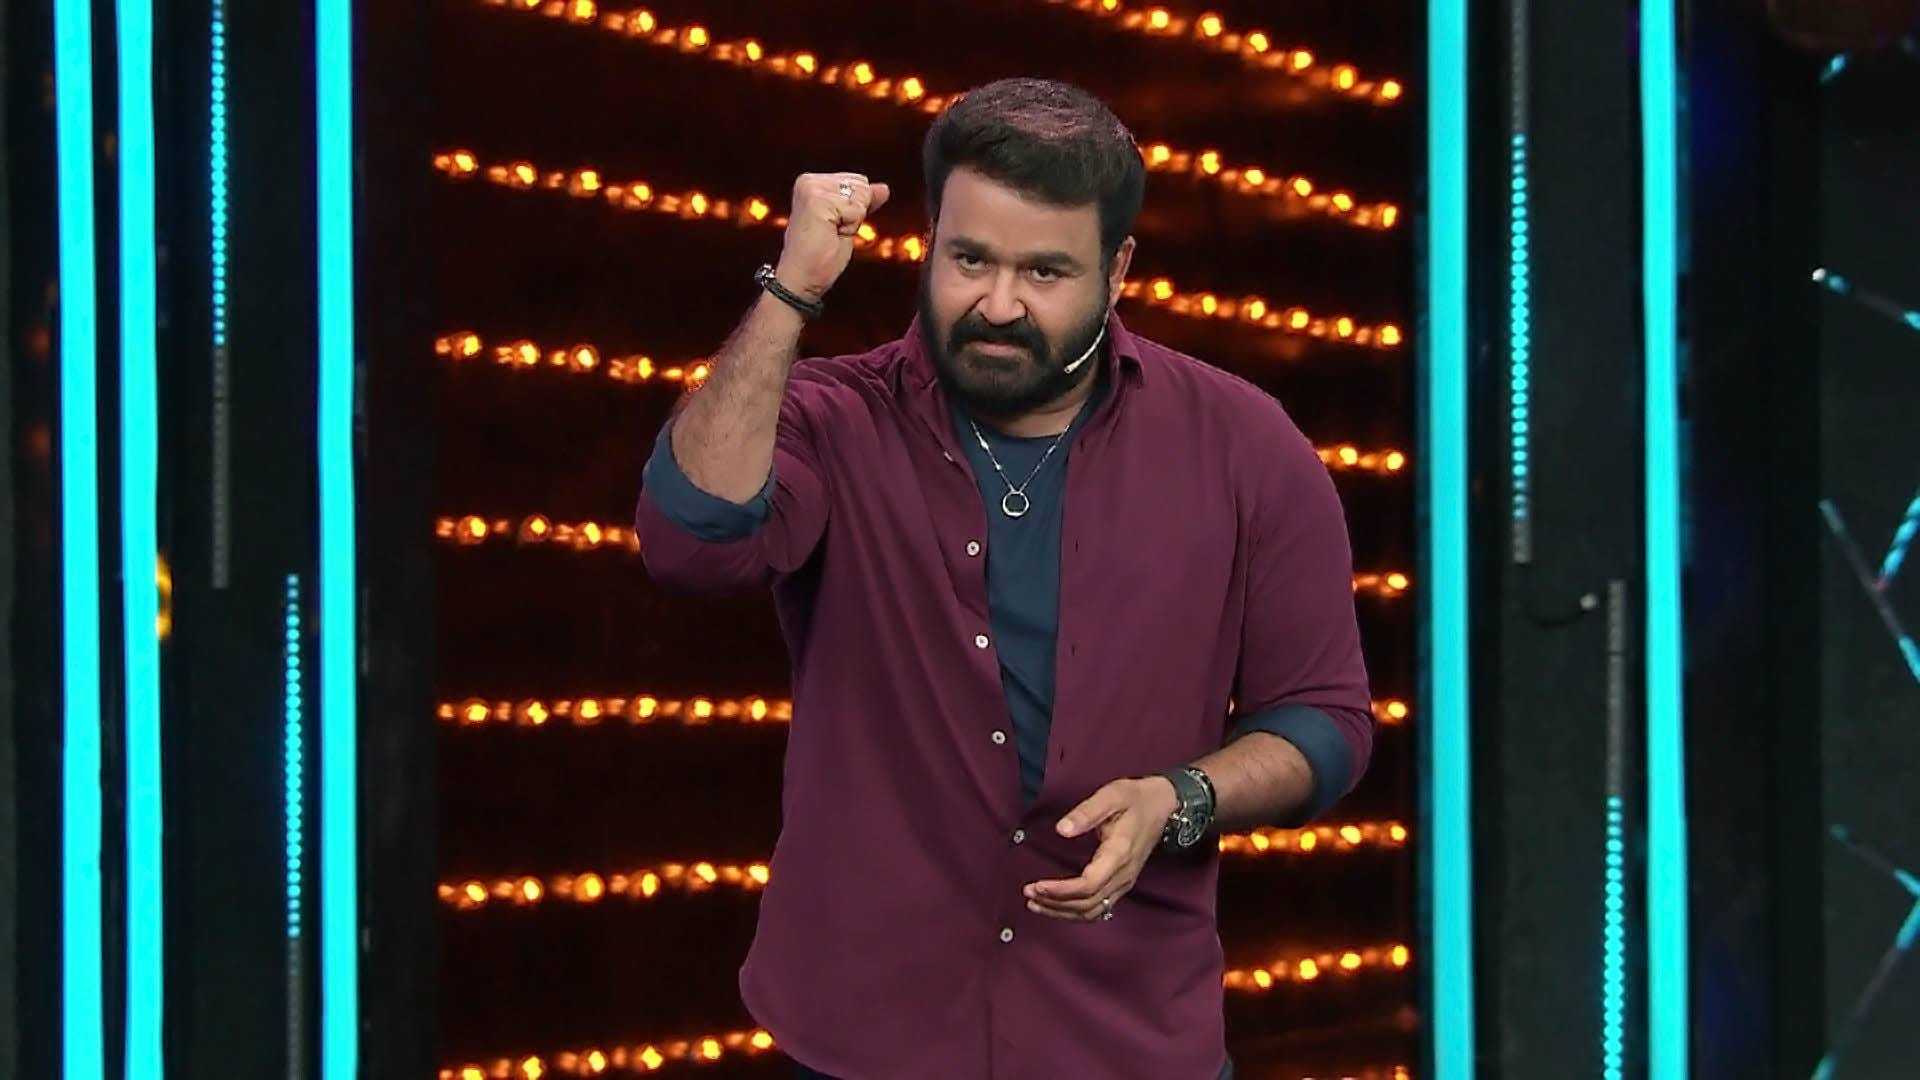 Bigg Boss - Season 1 Episode 35 : Day 34: Roaring Out with Anger!